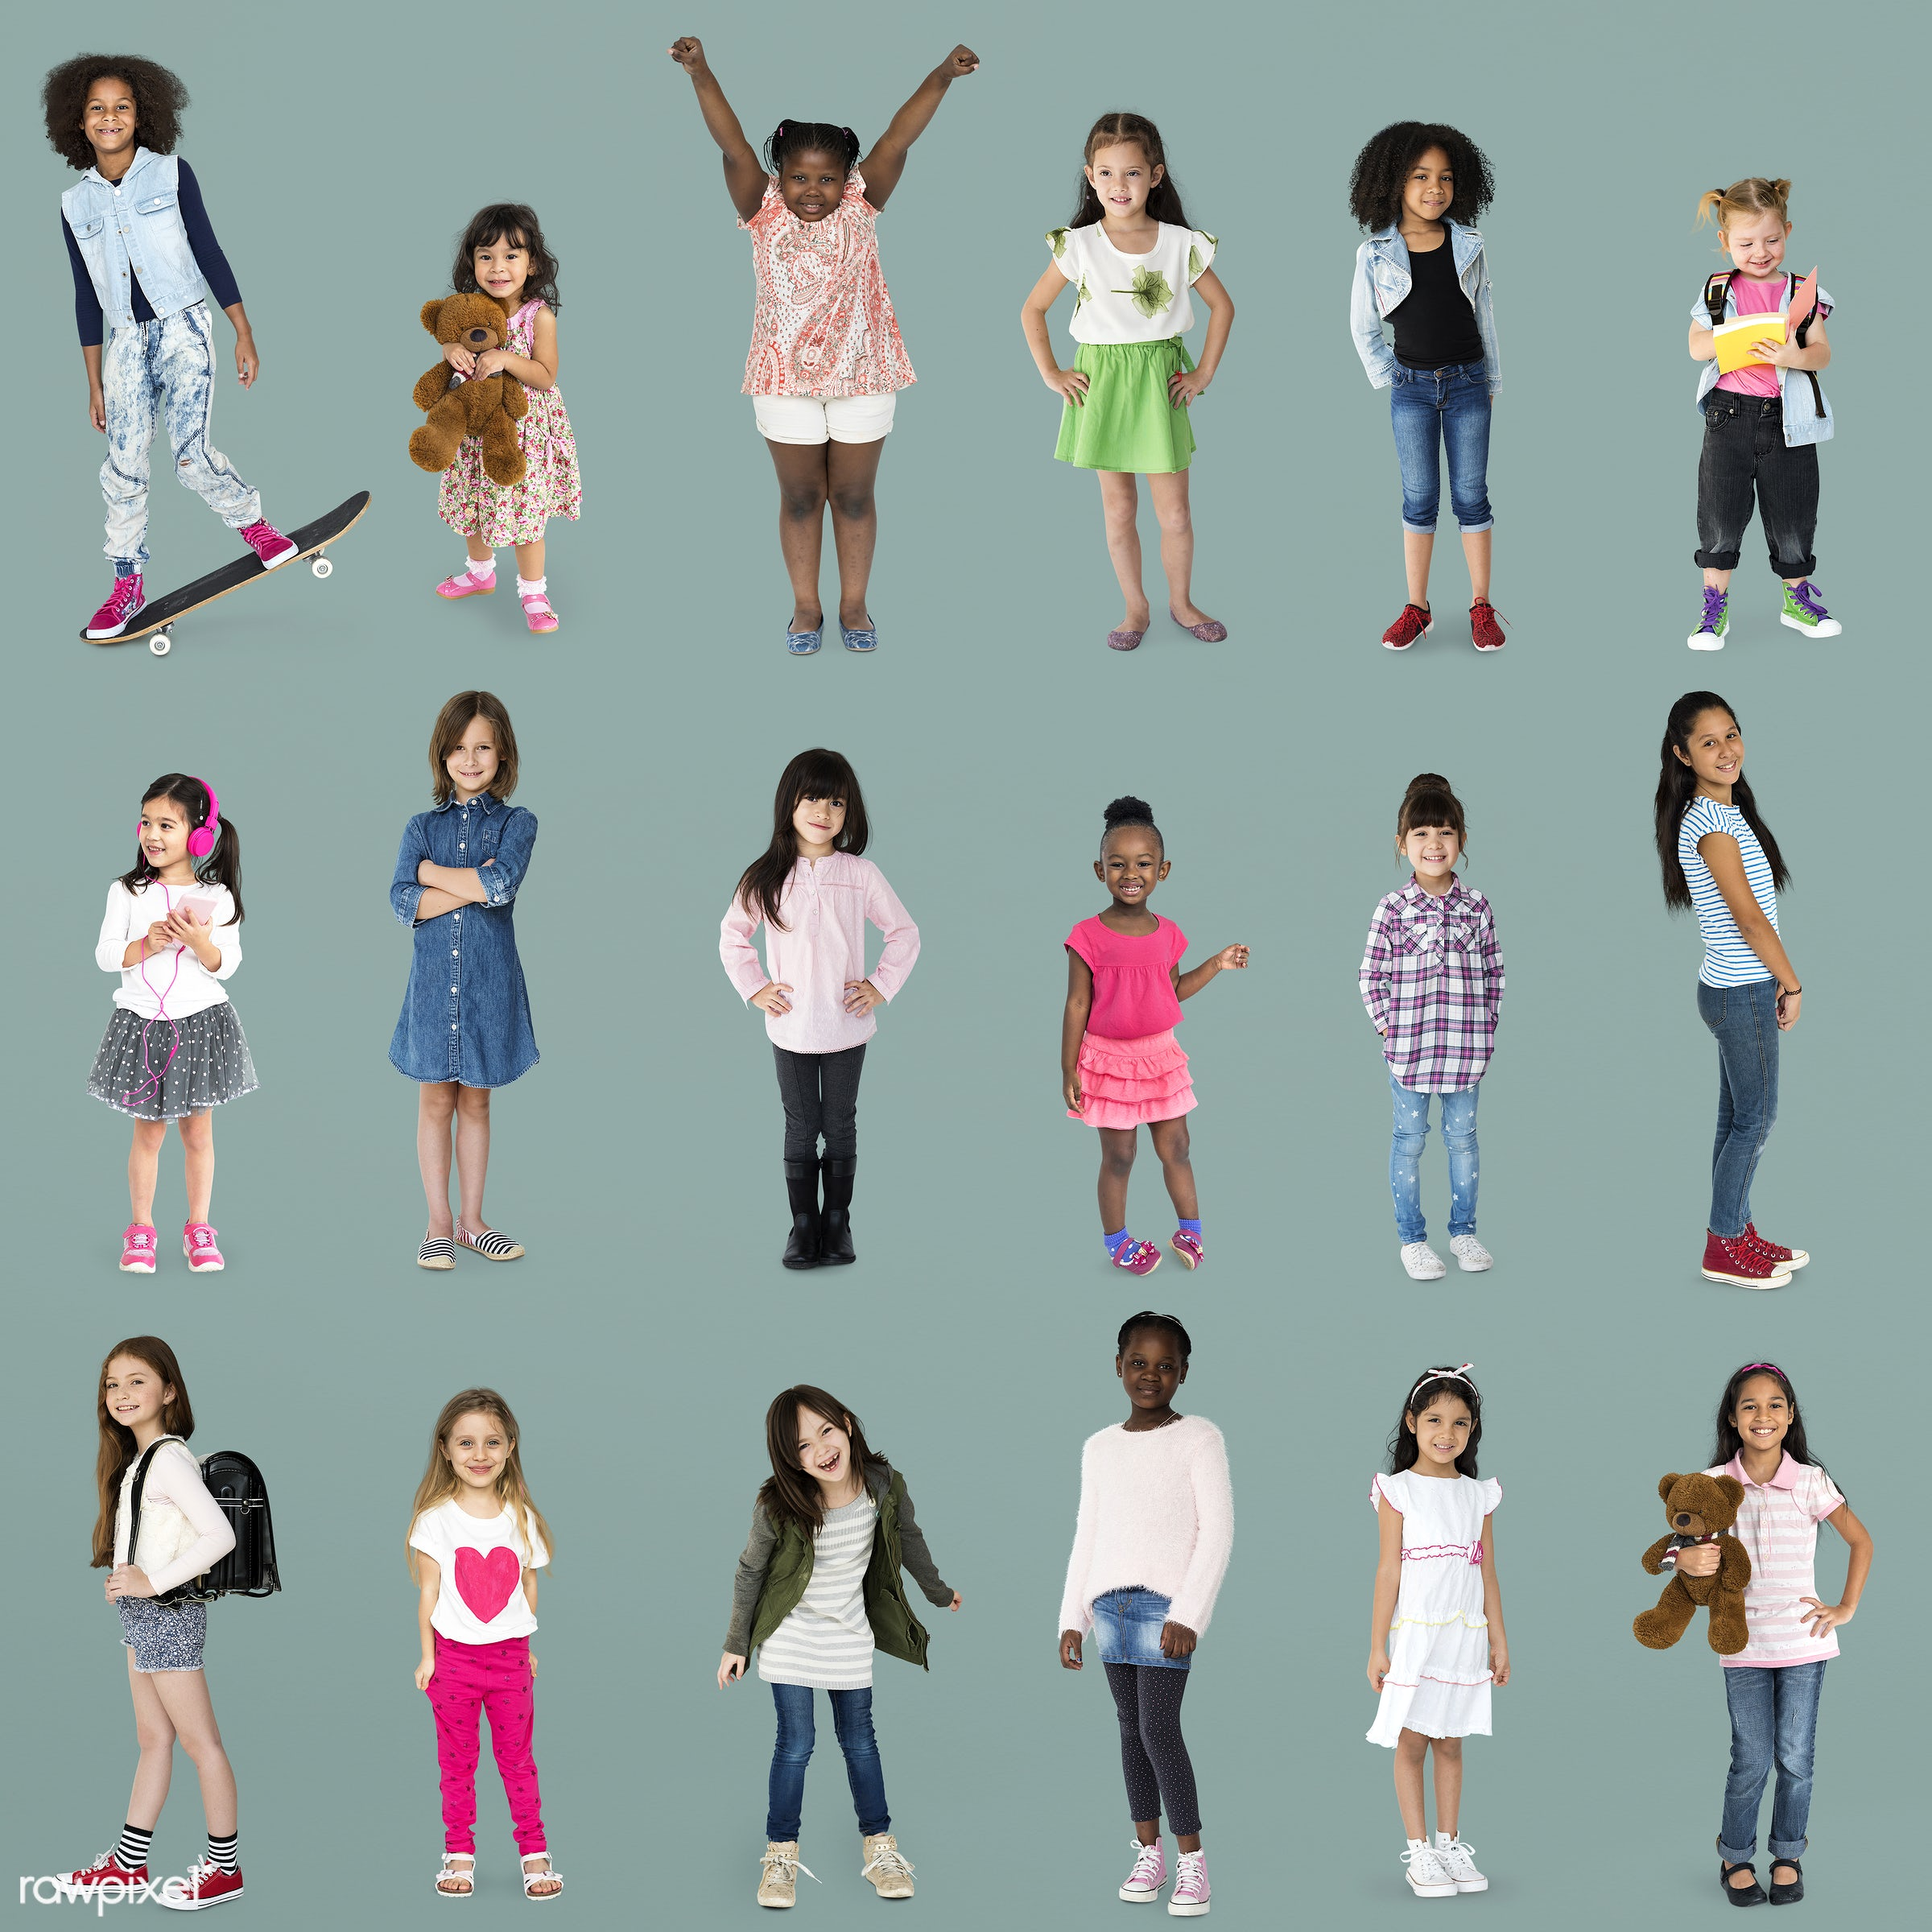 studio, person, diverse, set, children, little, entertain, collection, recreation, pretty, people, caucasian, asian, child,...